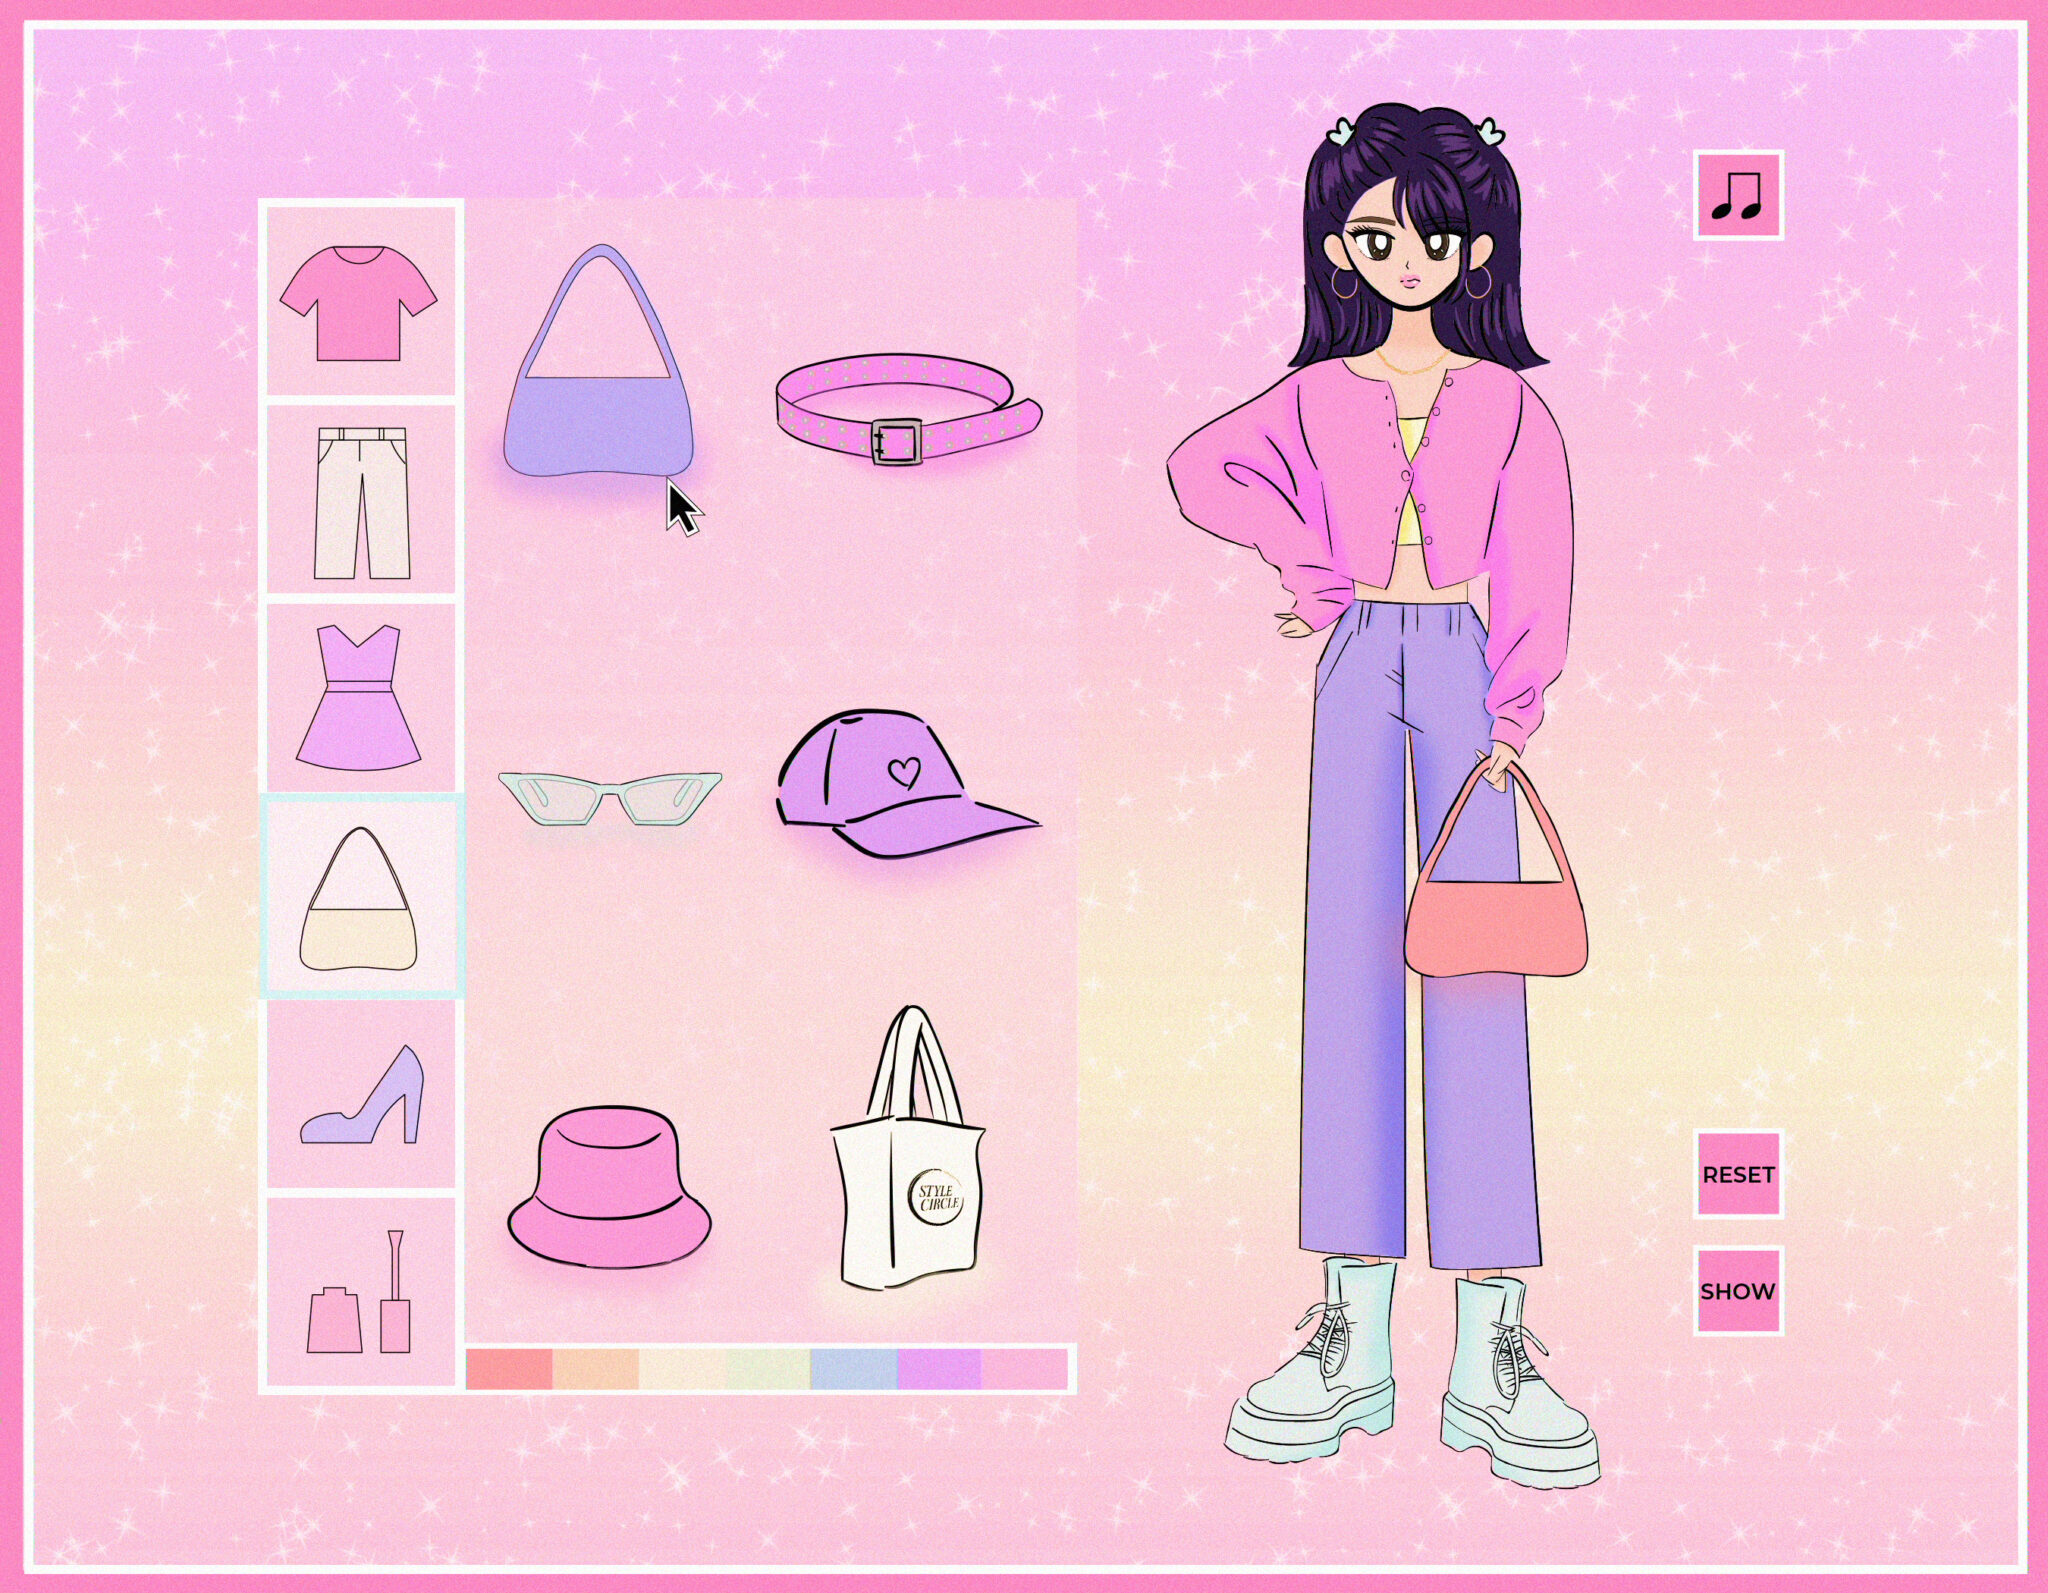 Illustration of a virtual dress-up game; a female character stands on the left dressed in trends of the early 2000s.